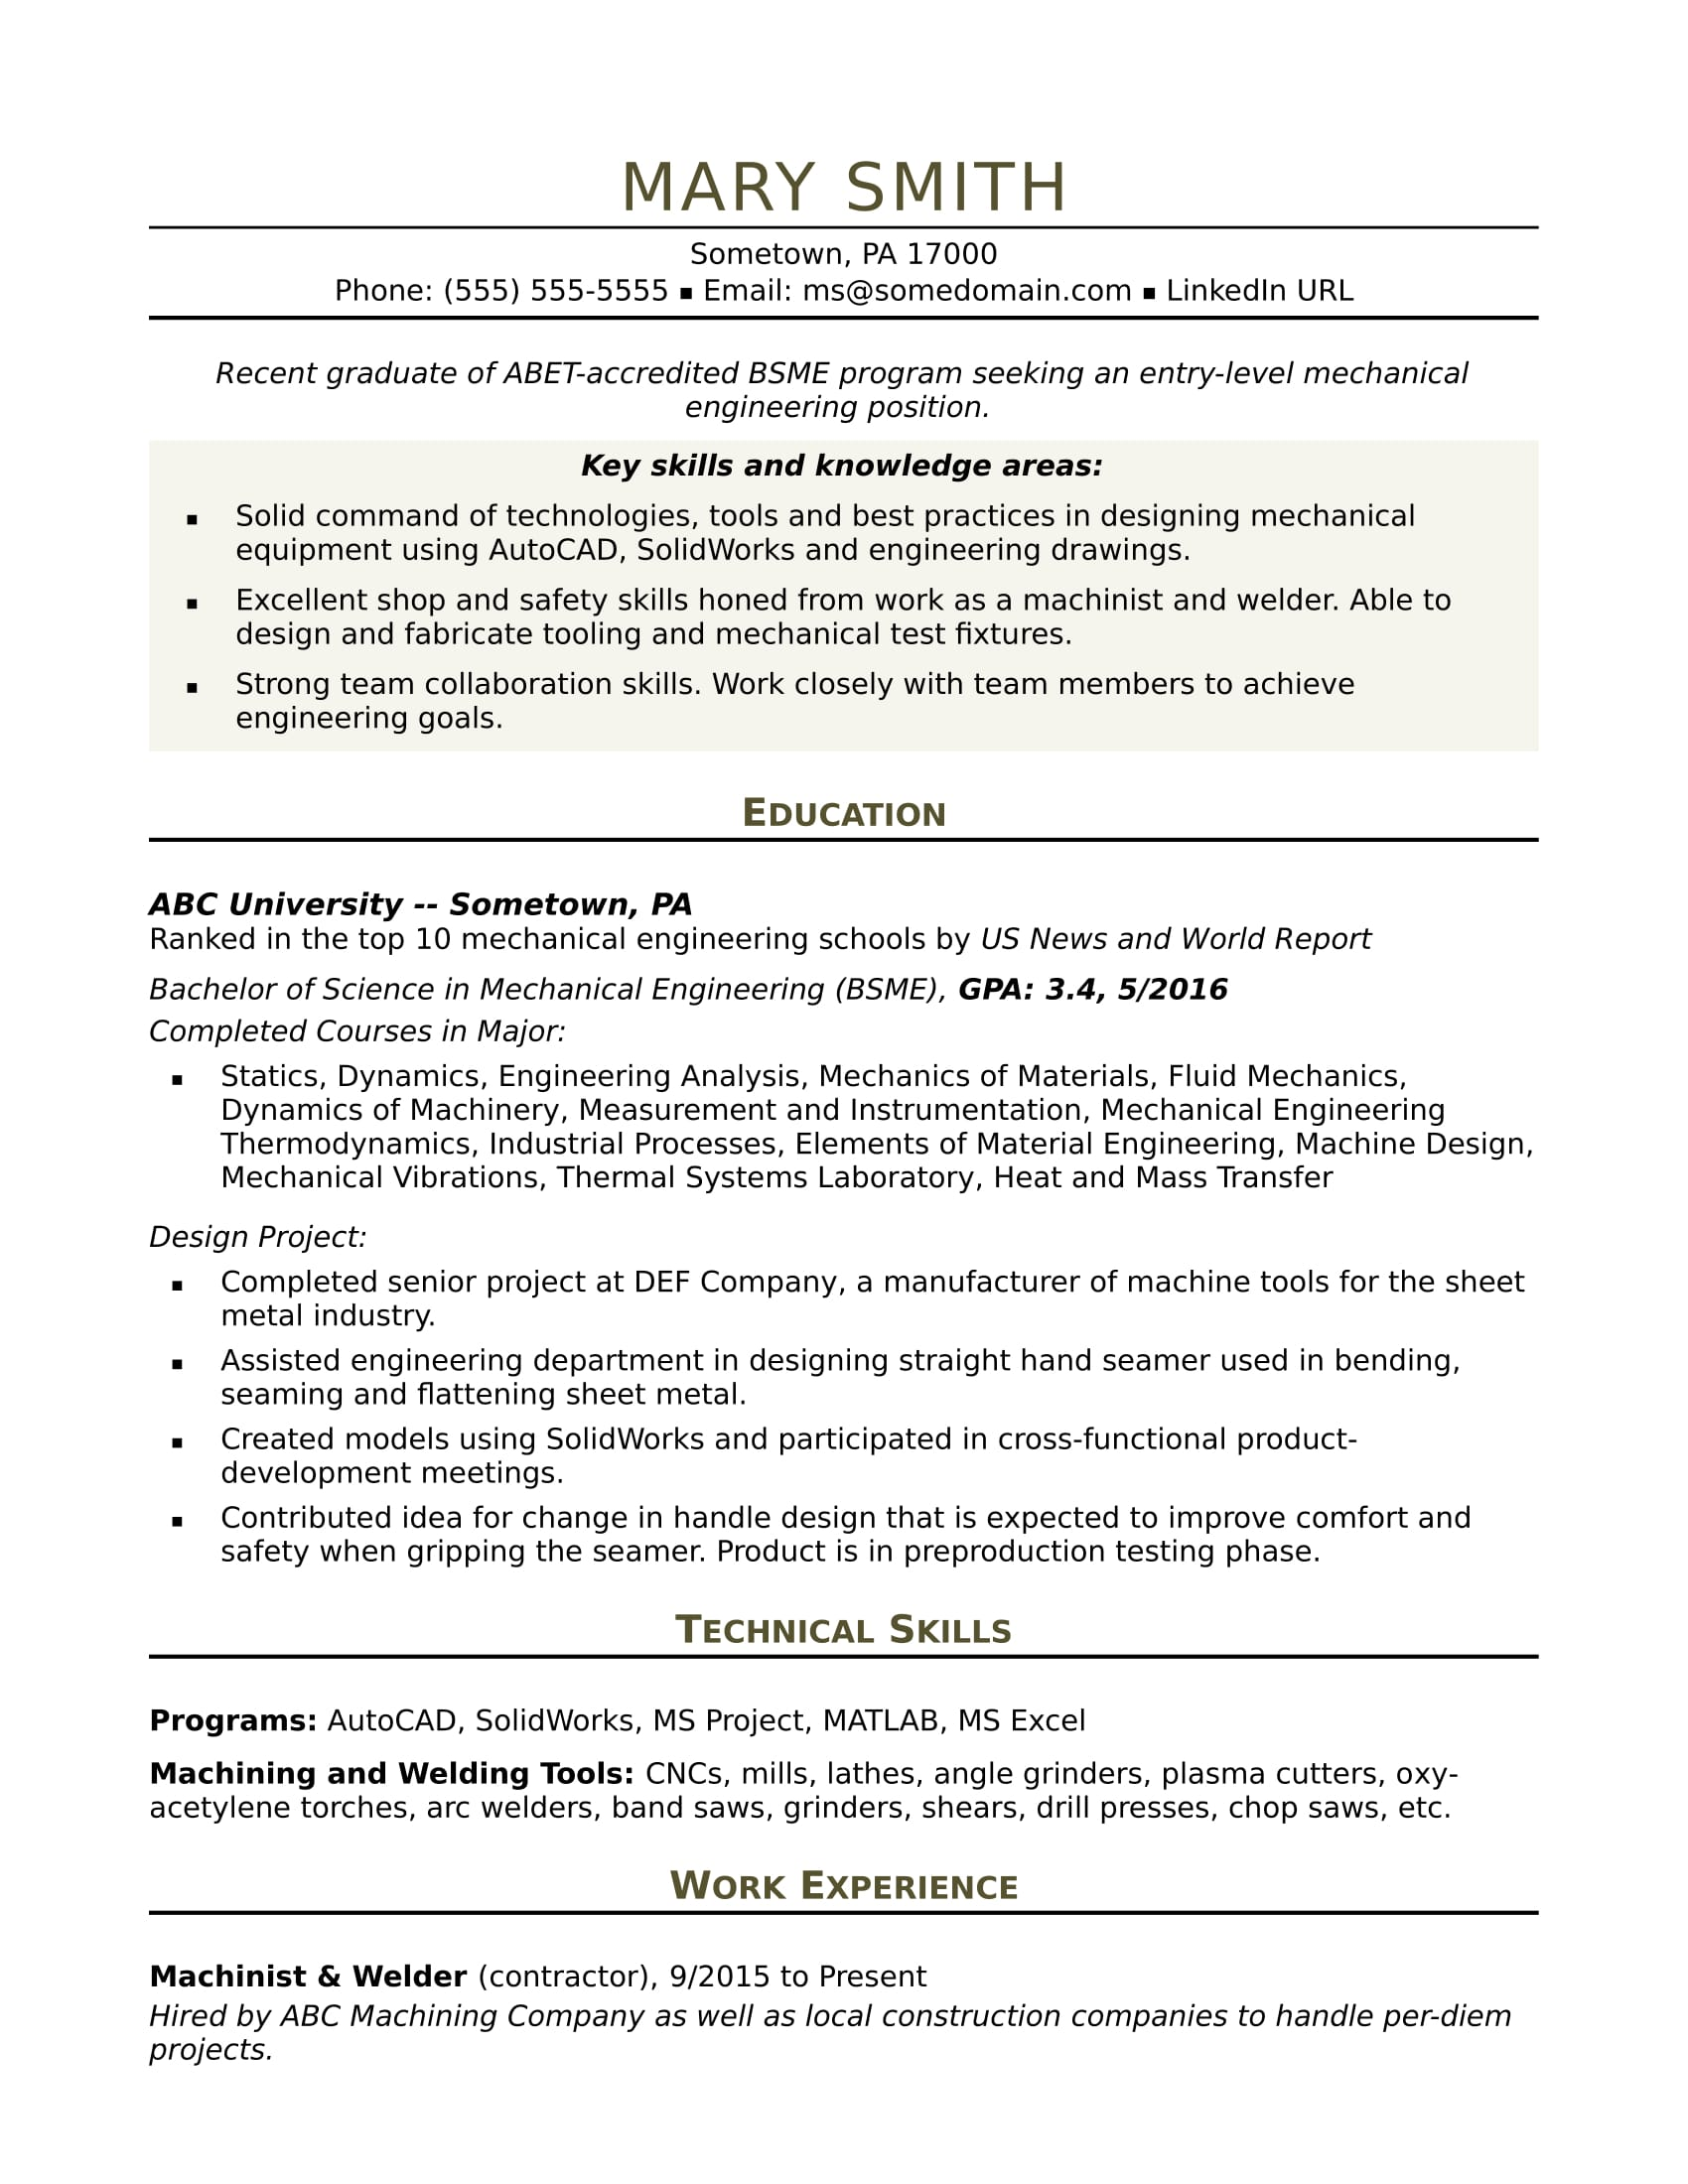 Sample Resume For An Entry Level Mechanical Engineer  Monster com